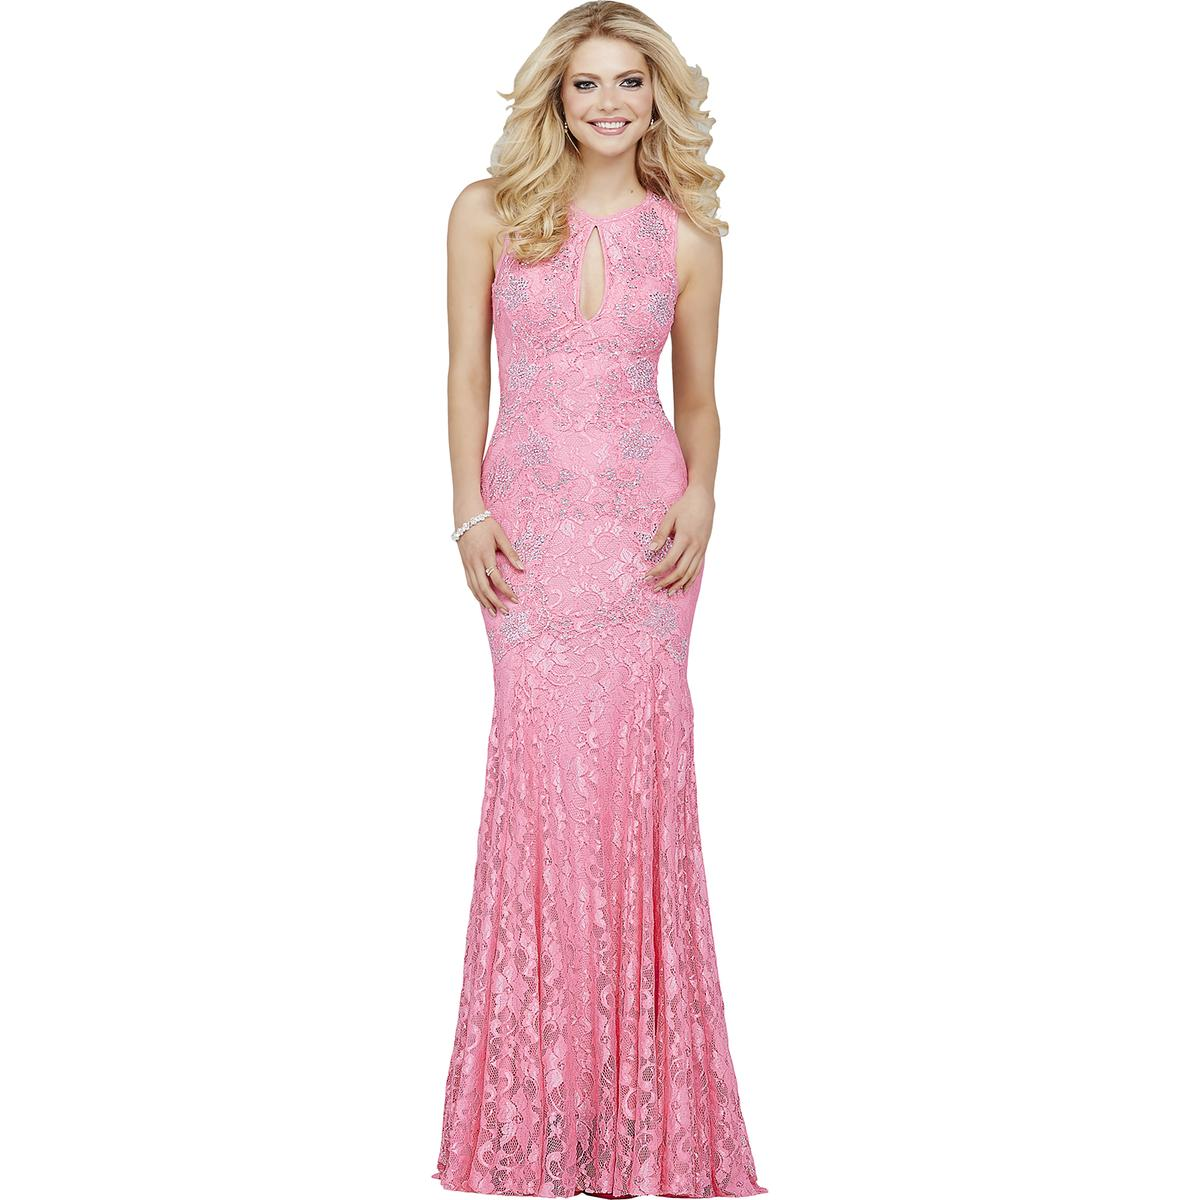 Jovani 6695 Pink Lace Open Back Prom Formal Dress Gown 6 BHFO | eBay